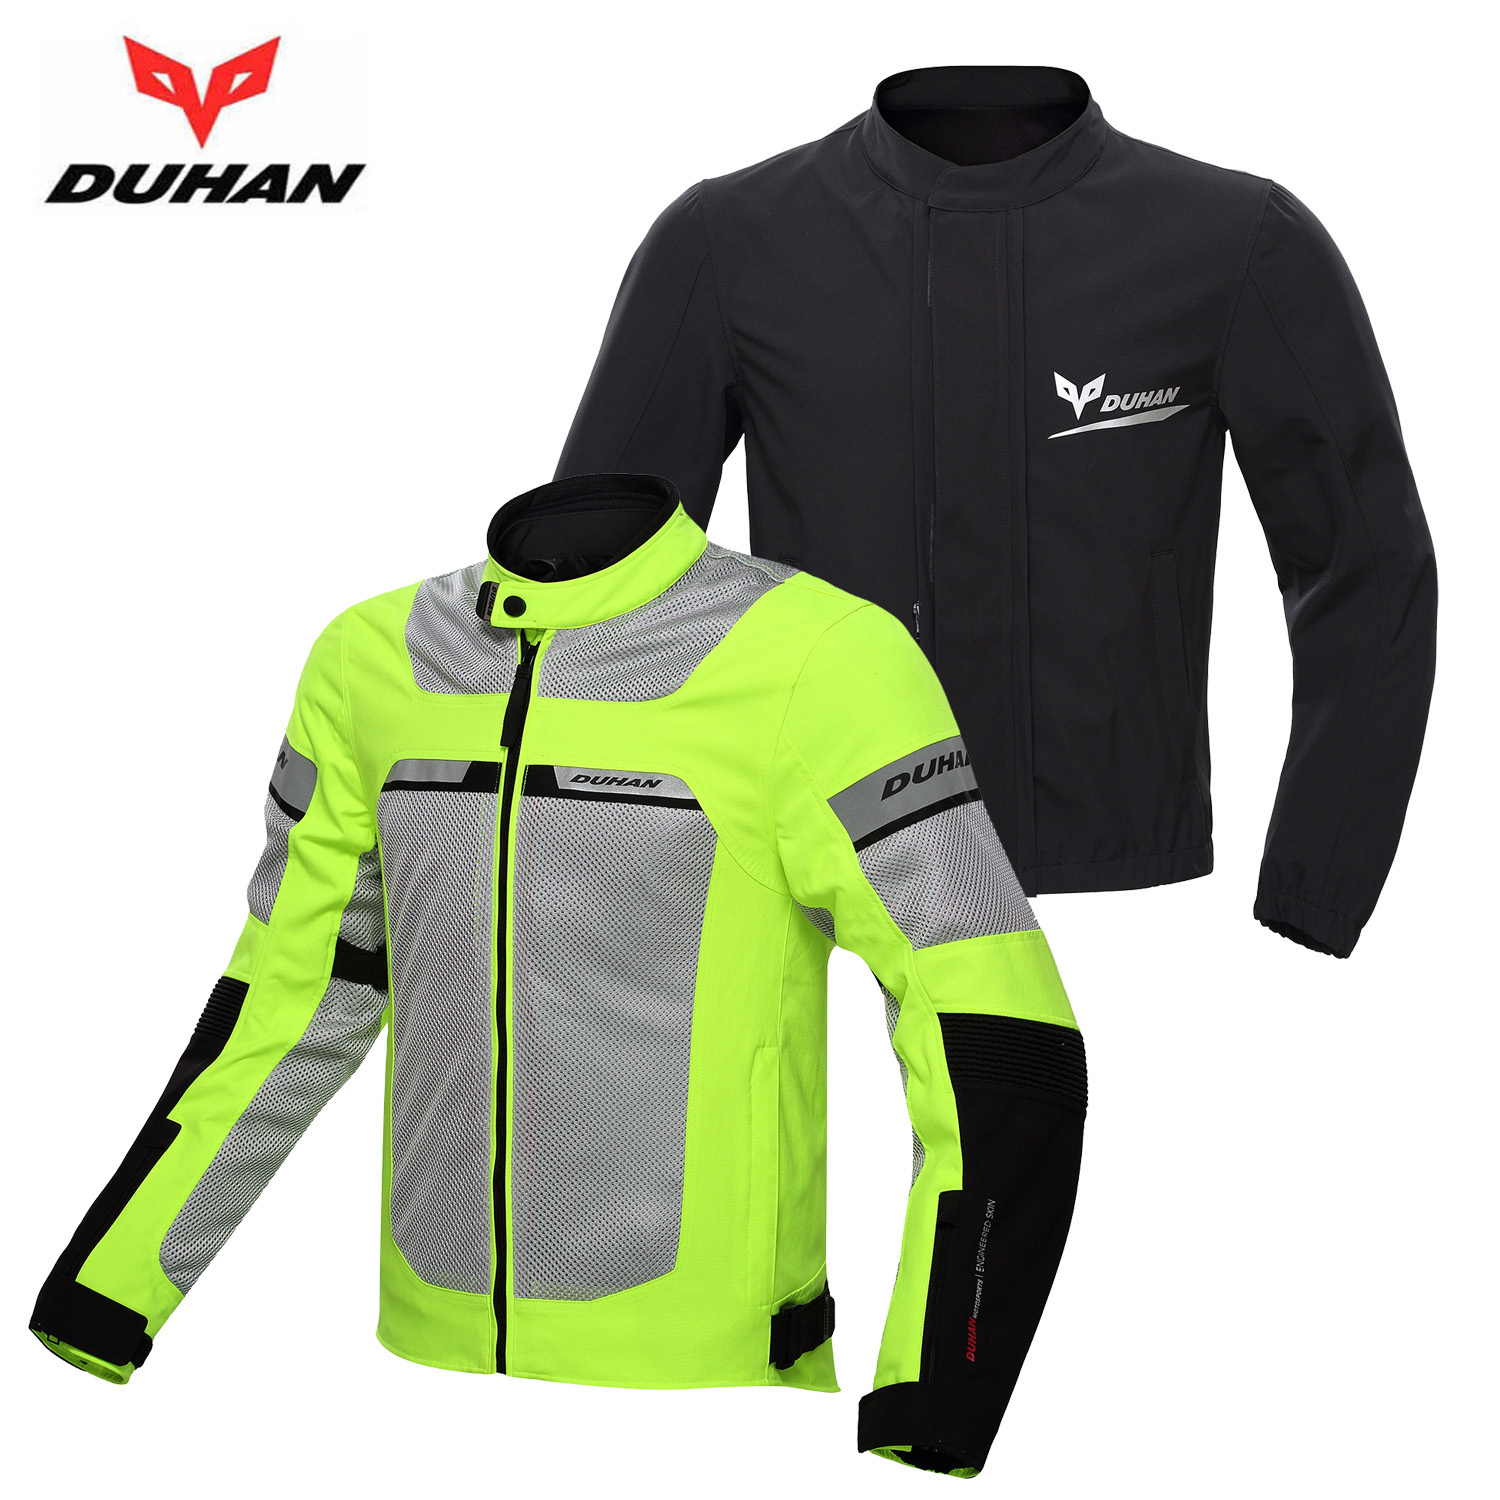 DUHAN Men Motocross Riding Clothes Motorcycle Racing Jacket Windproof Summer Breathable Jackets Clothing With Waterproof Lining duhan men s motocross outdoor riding reflective desgin waistcoat clothing motorcycle jackets summer racing vest jaqueta